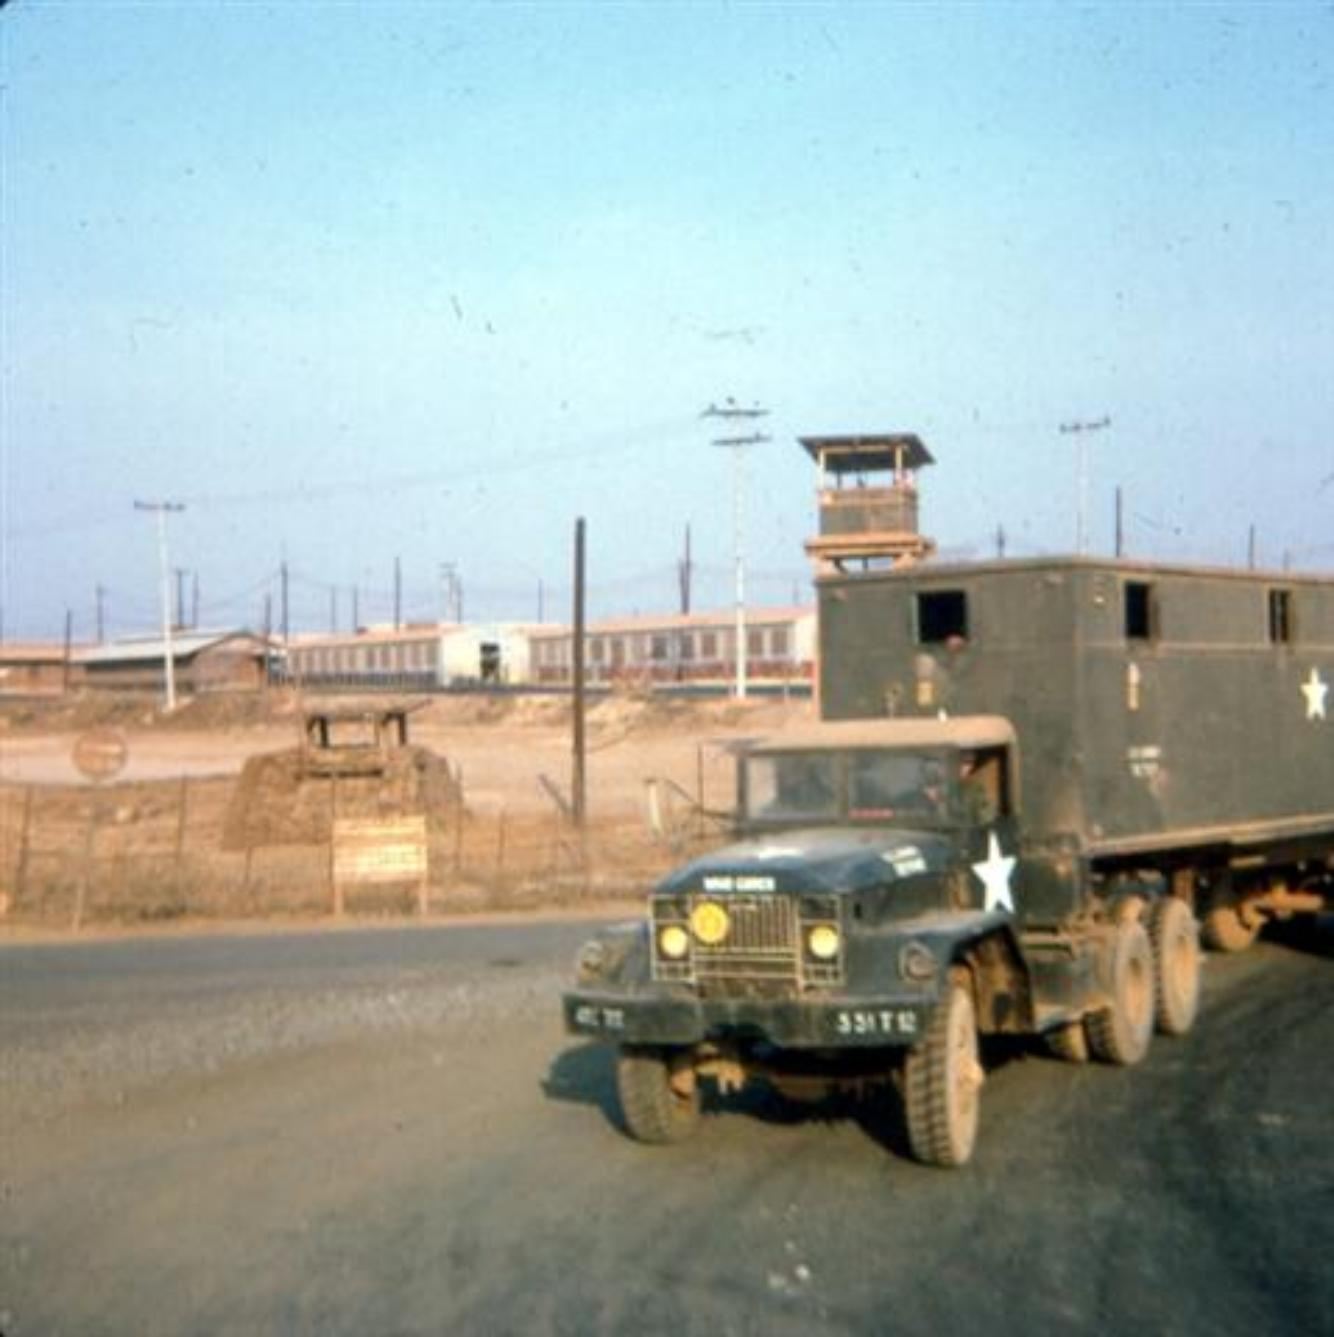 Making The Run To Newport-Photo Taken At The Corner Of 1A And Bear Cat Road, Also Called Charlie Road The buildings in the background are transportation units, located in the area they called TC Hill,on Long Binh Post.